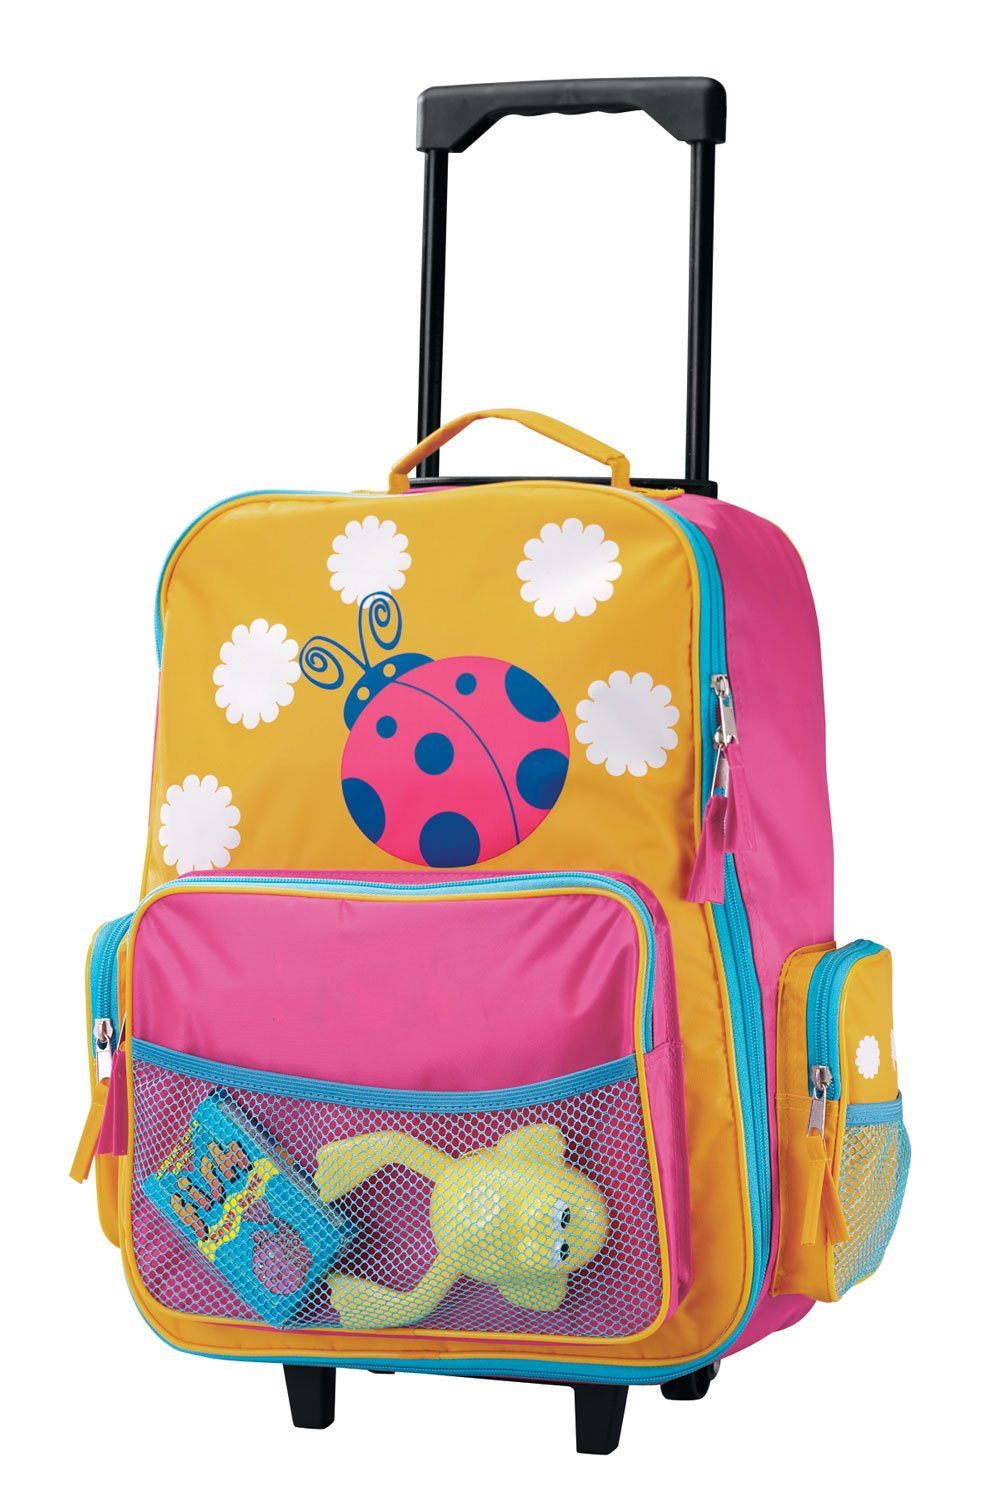 Top 5 Personalized Kids Luggage You Don't Wanna Miss 1